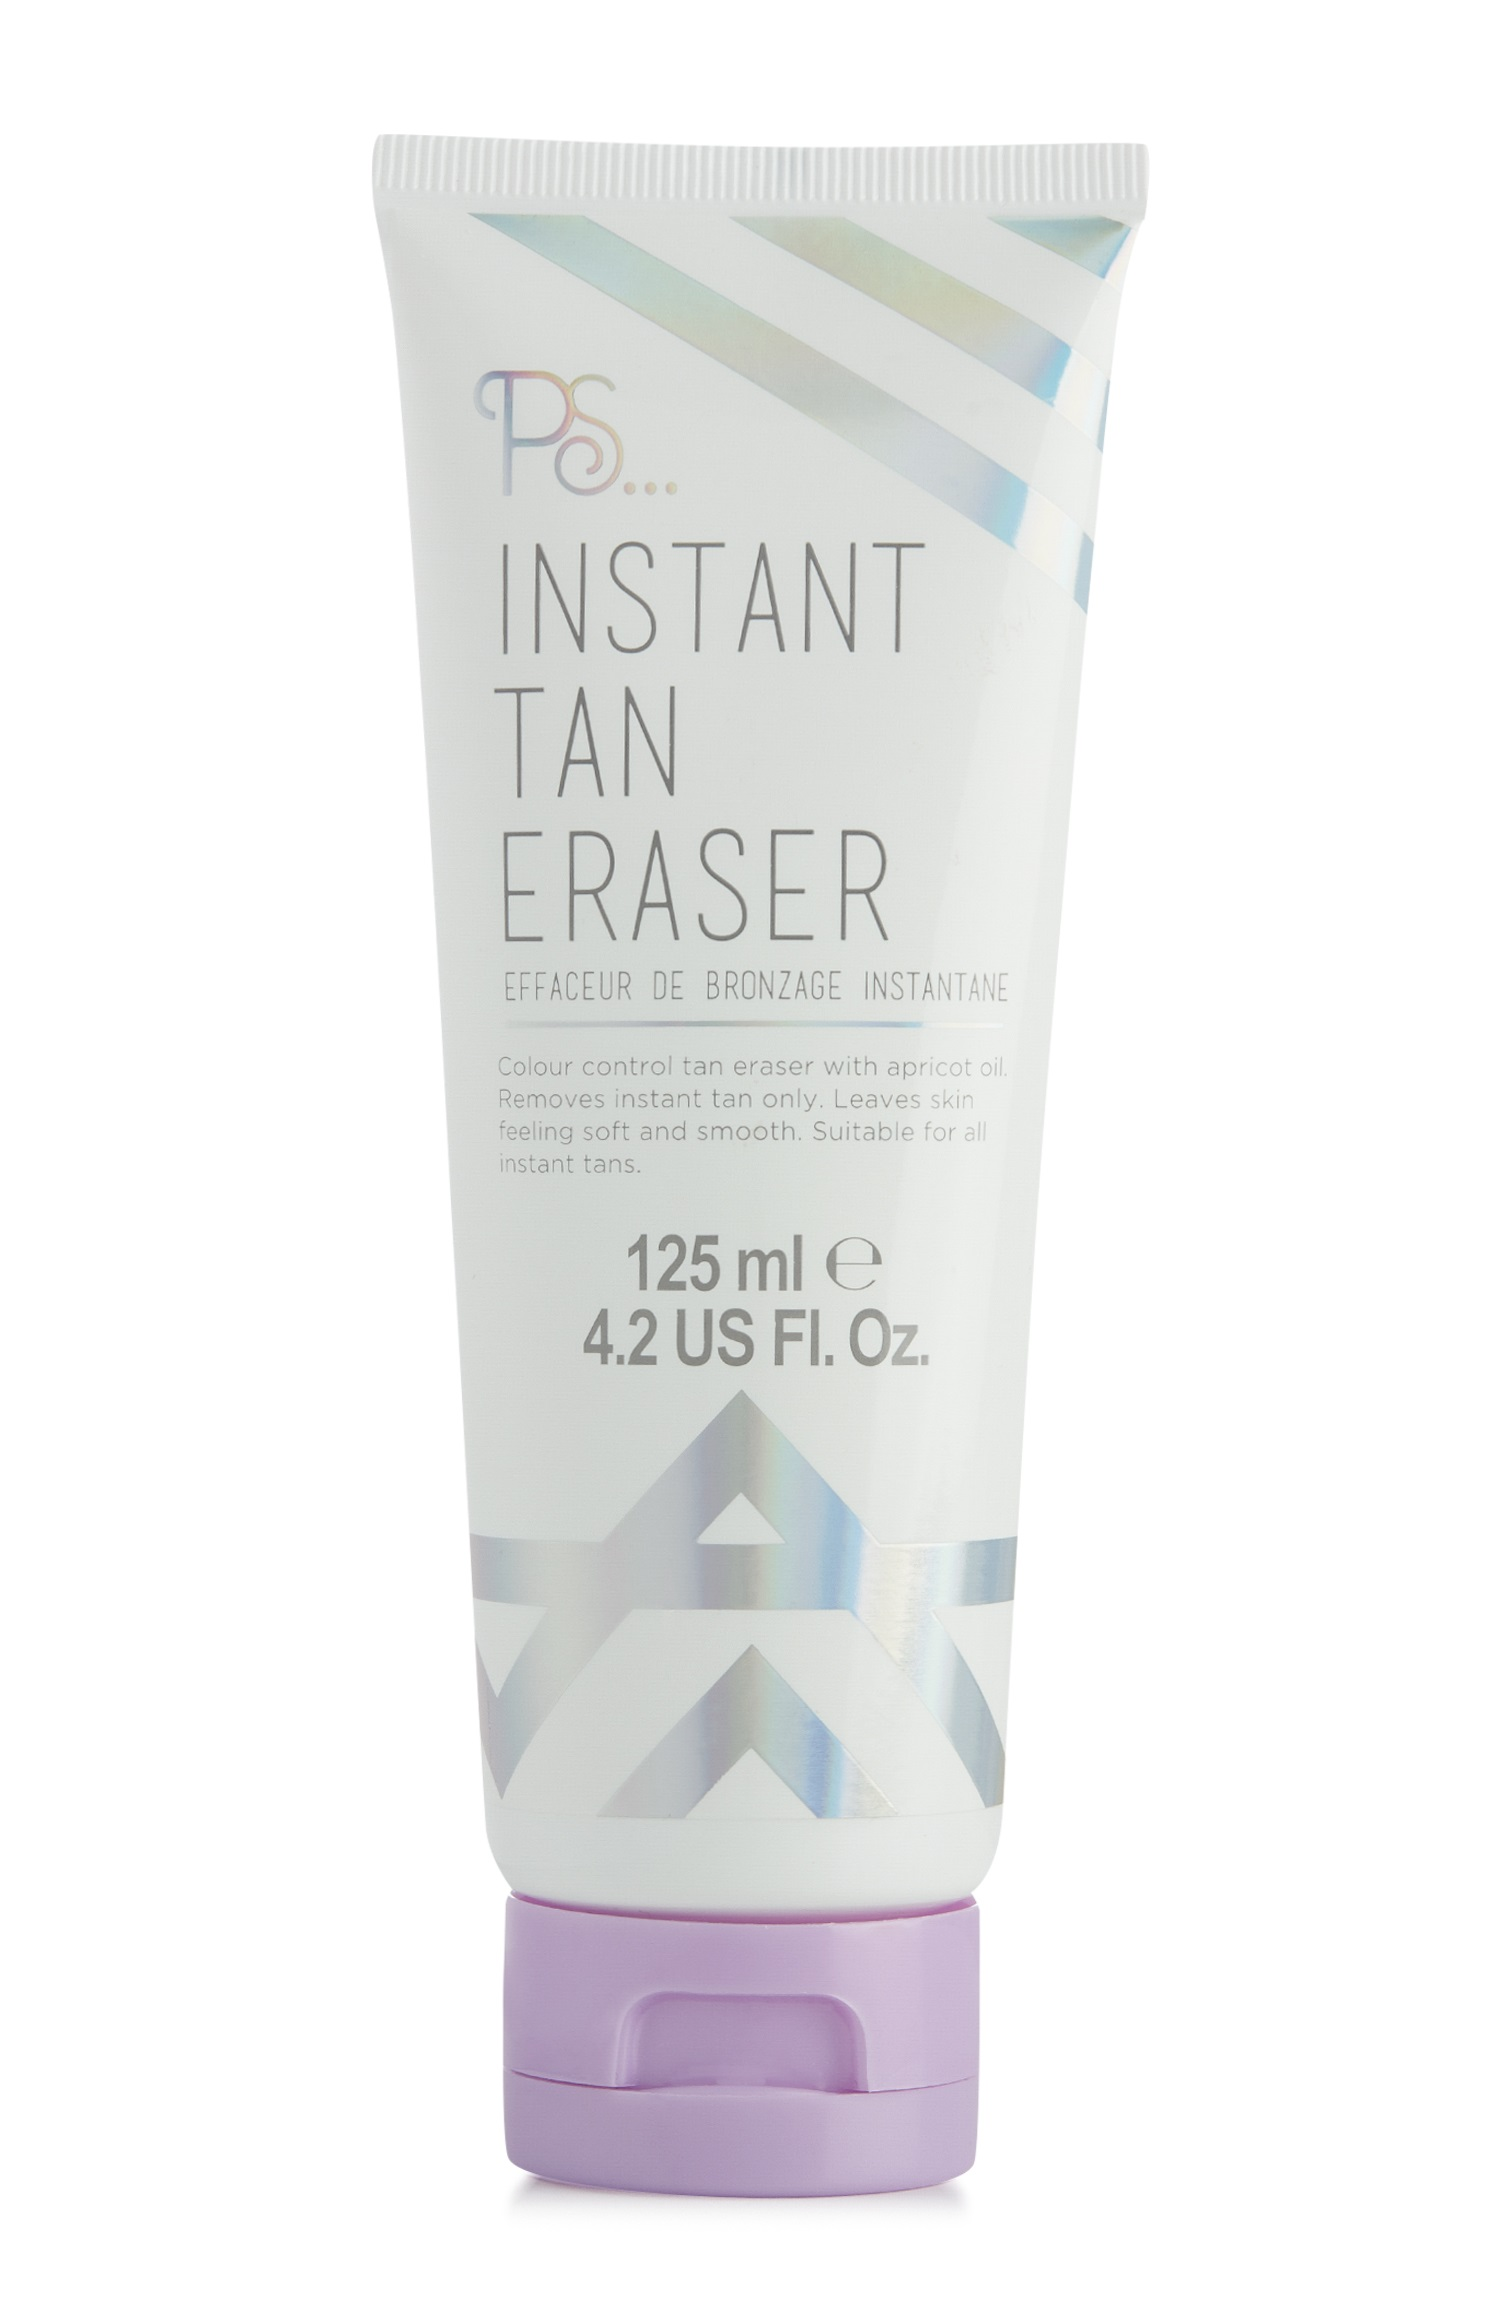 PS Instant Tan remover